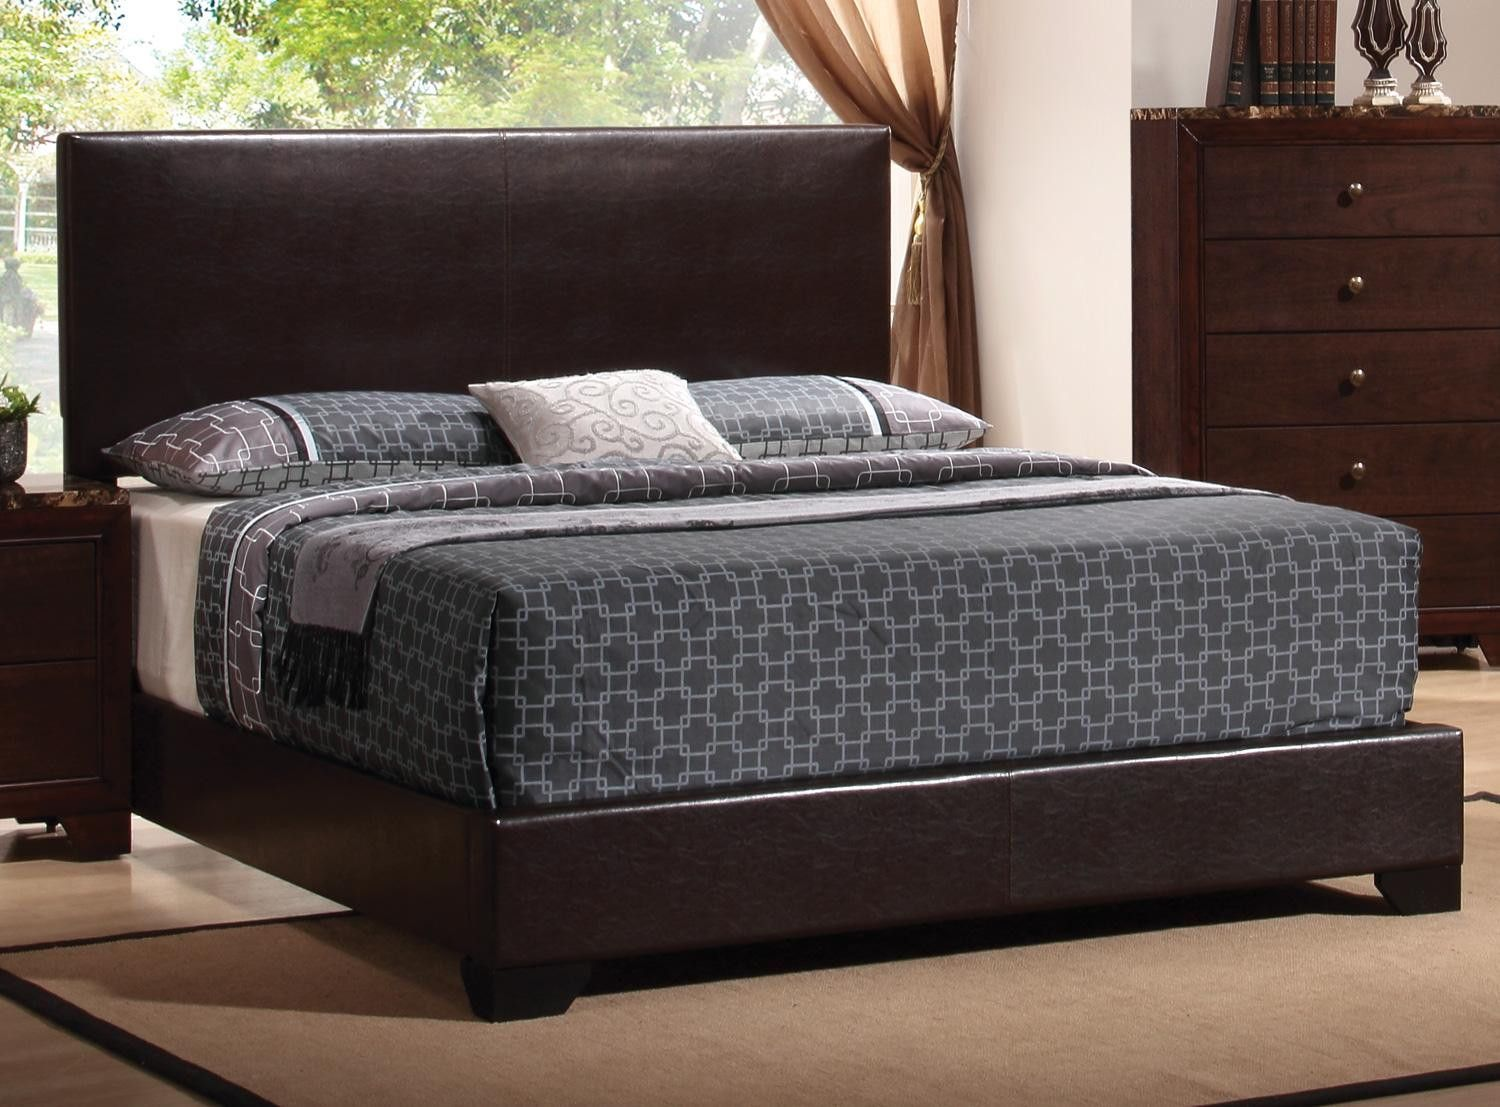 Competitor S Price 335 California King Faux Leather Upholstery High Straight Headboard Bracket Feet Queen Upholstered Bed Upholstered Beds Cal King Bedding